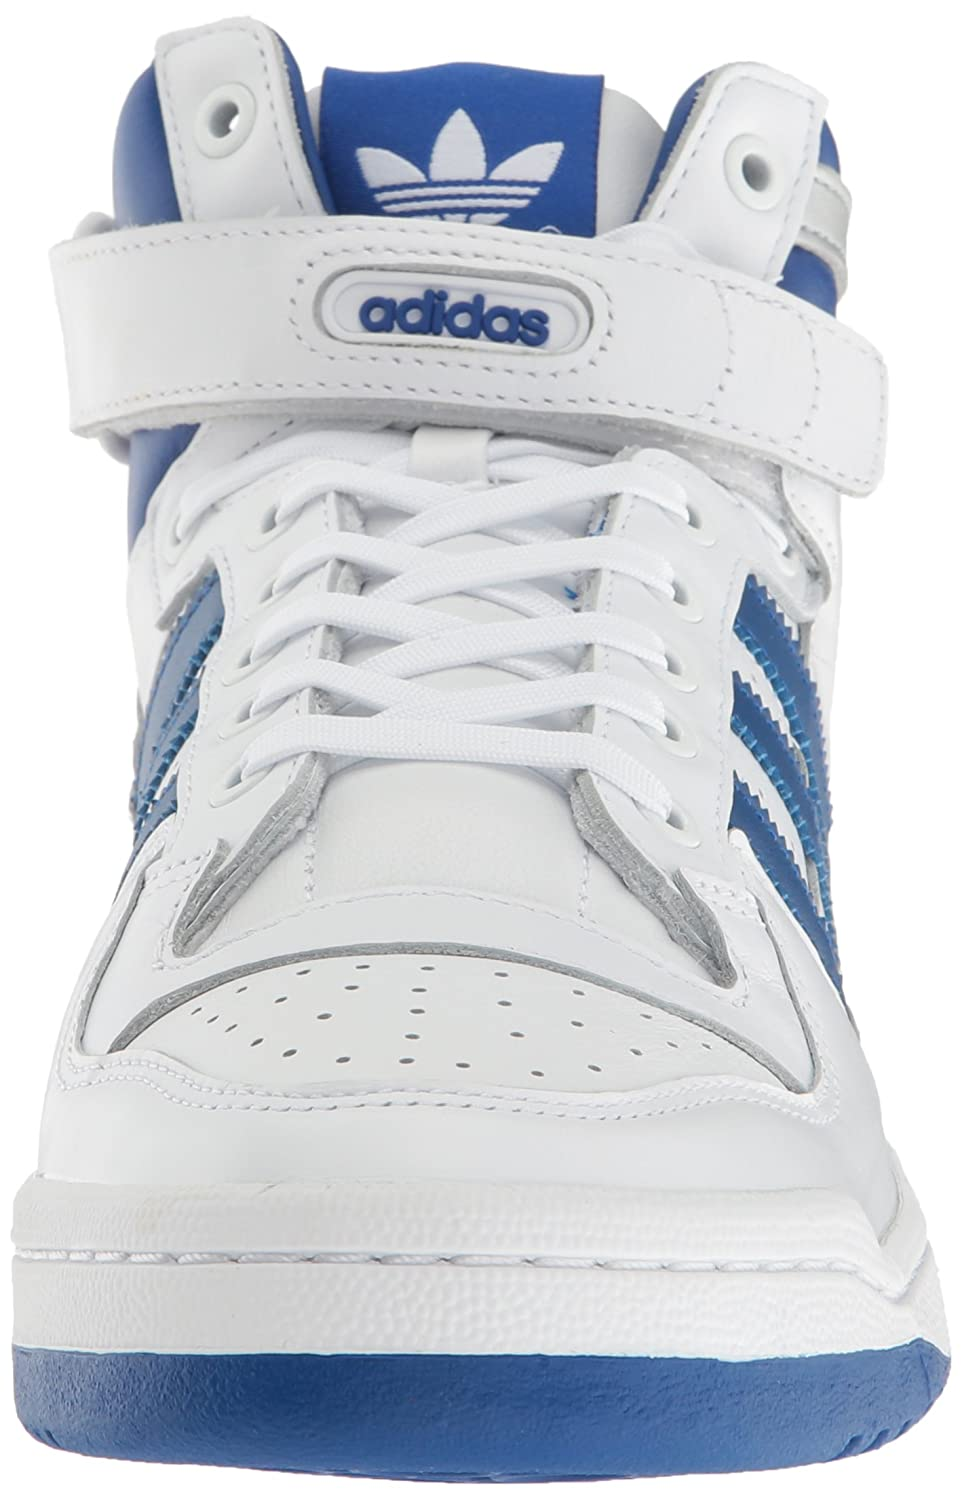 timeless design 174a5 be1be Amazon.com   adidas Originals Men s Forum Mid Refined Fashion Sneakers    Fashion Sneakers